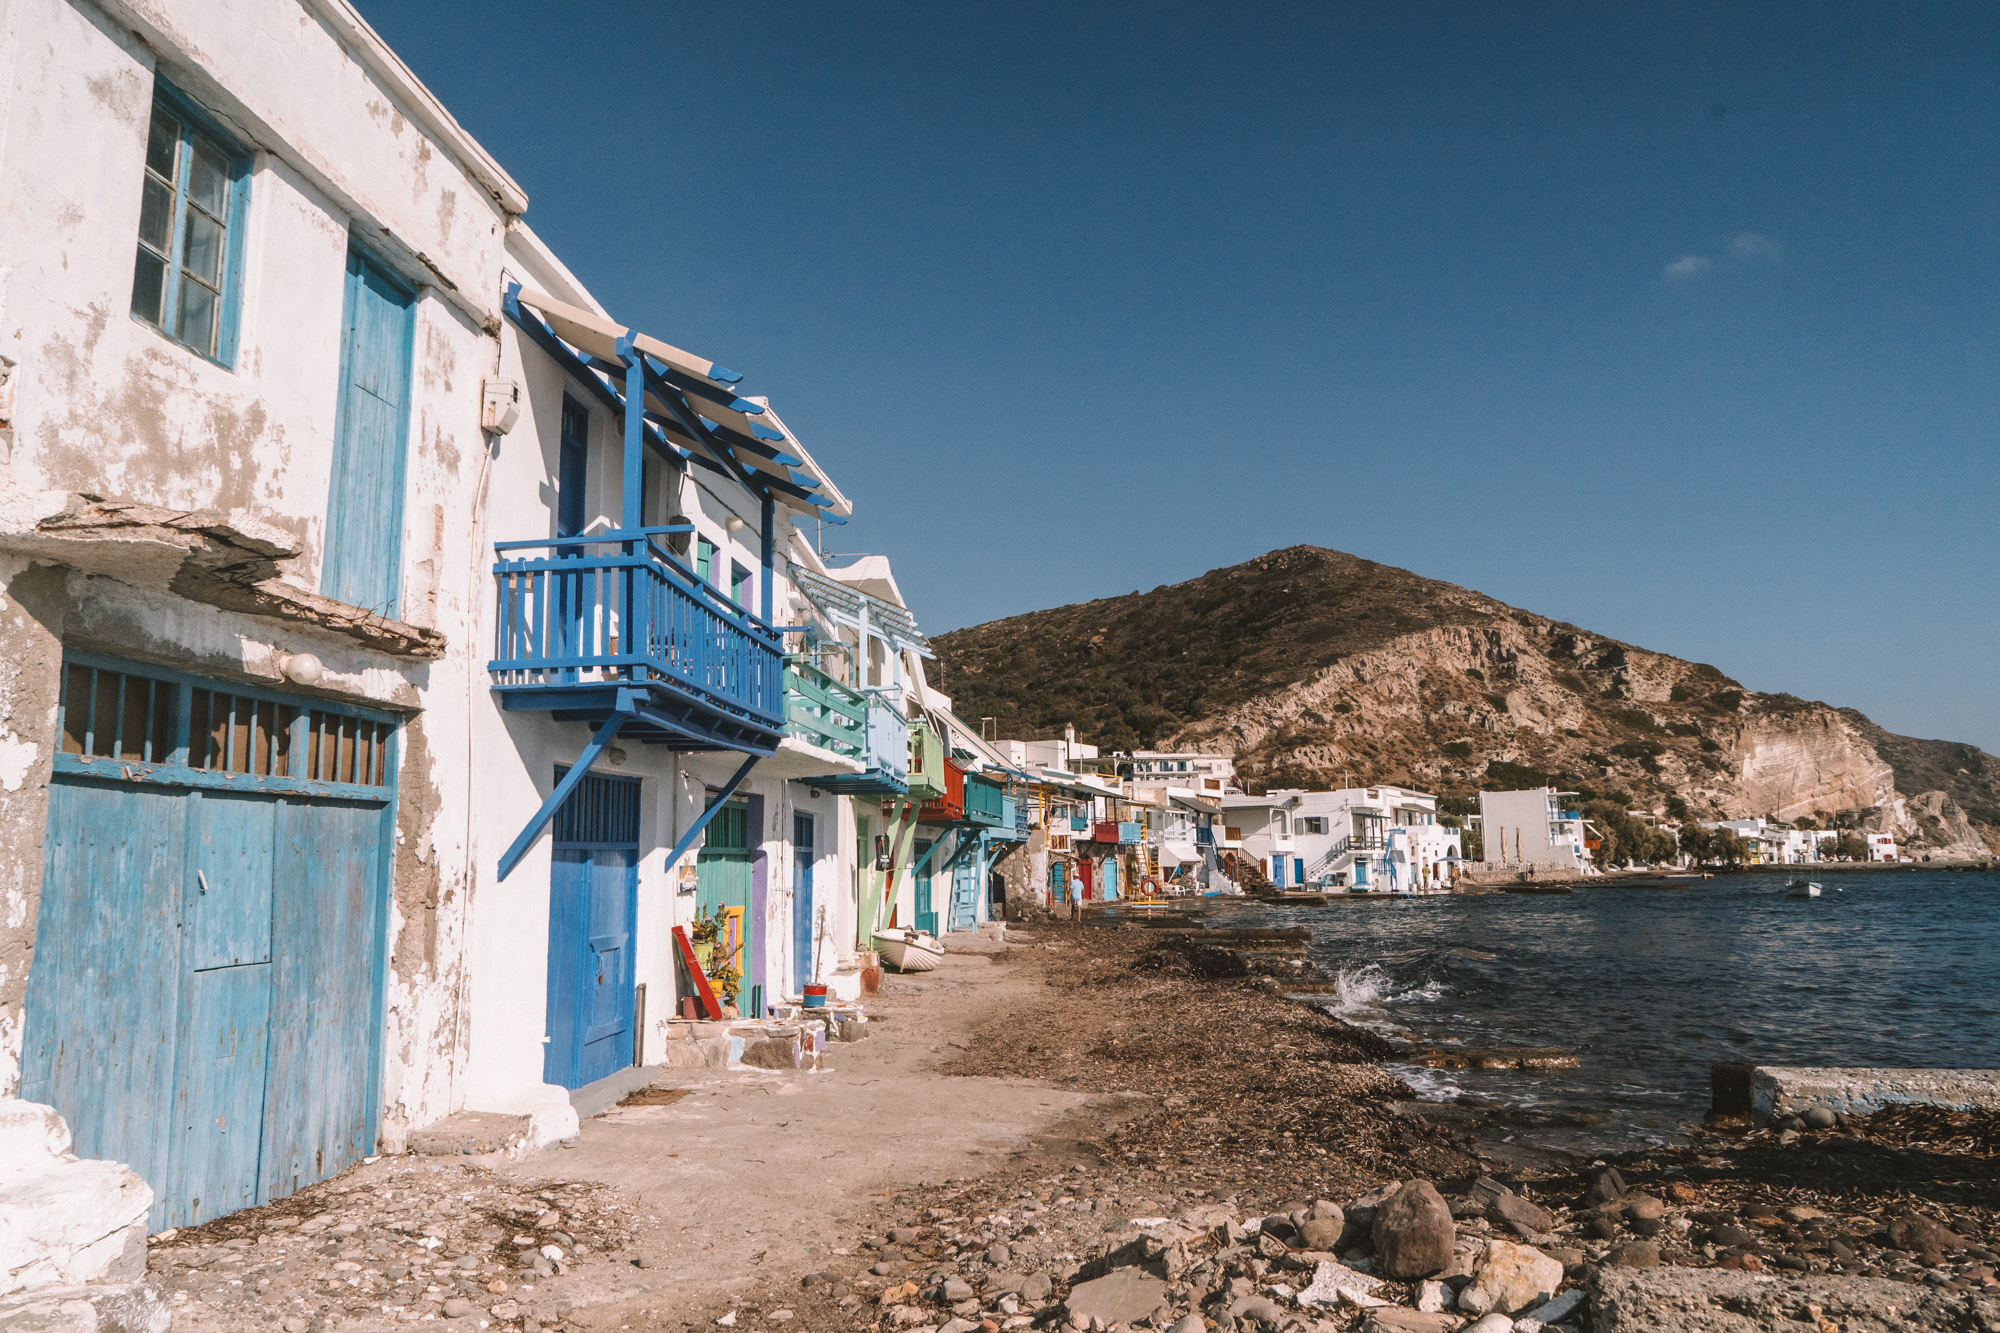 Rows of colourful fishing houses by the sea in Klima Fishing Village Milos, Greece